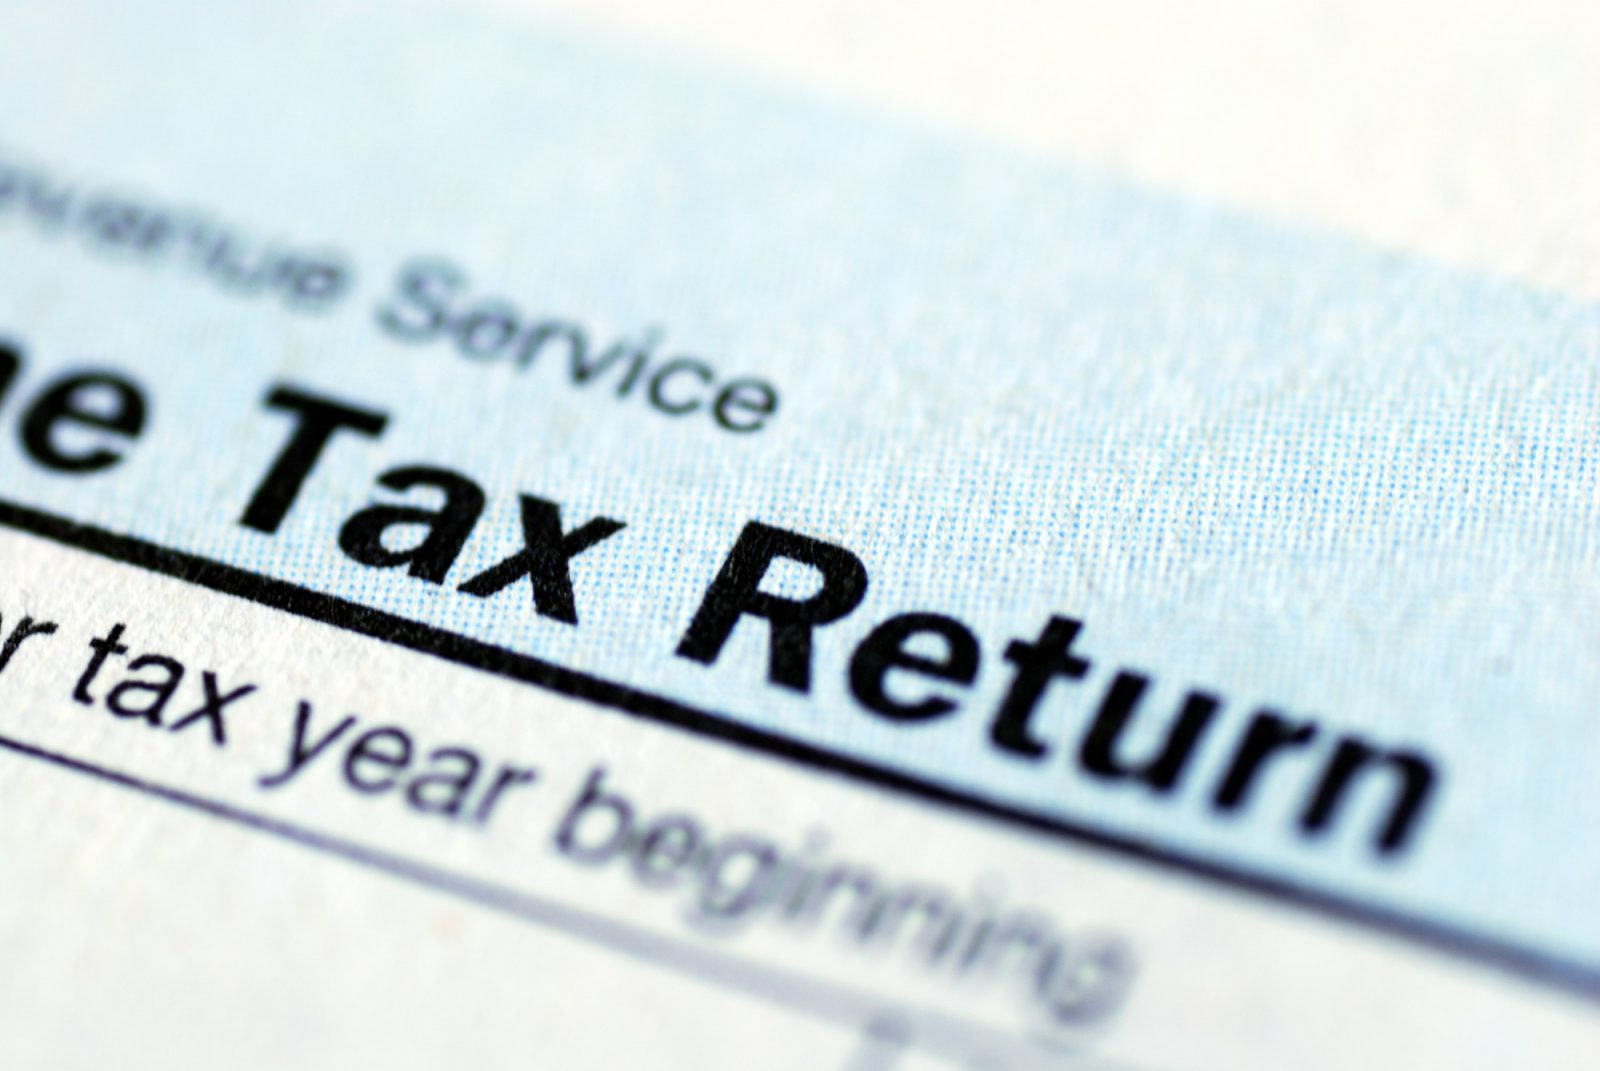 not filing taxes for 10 years